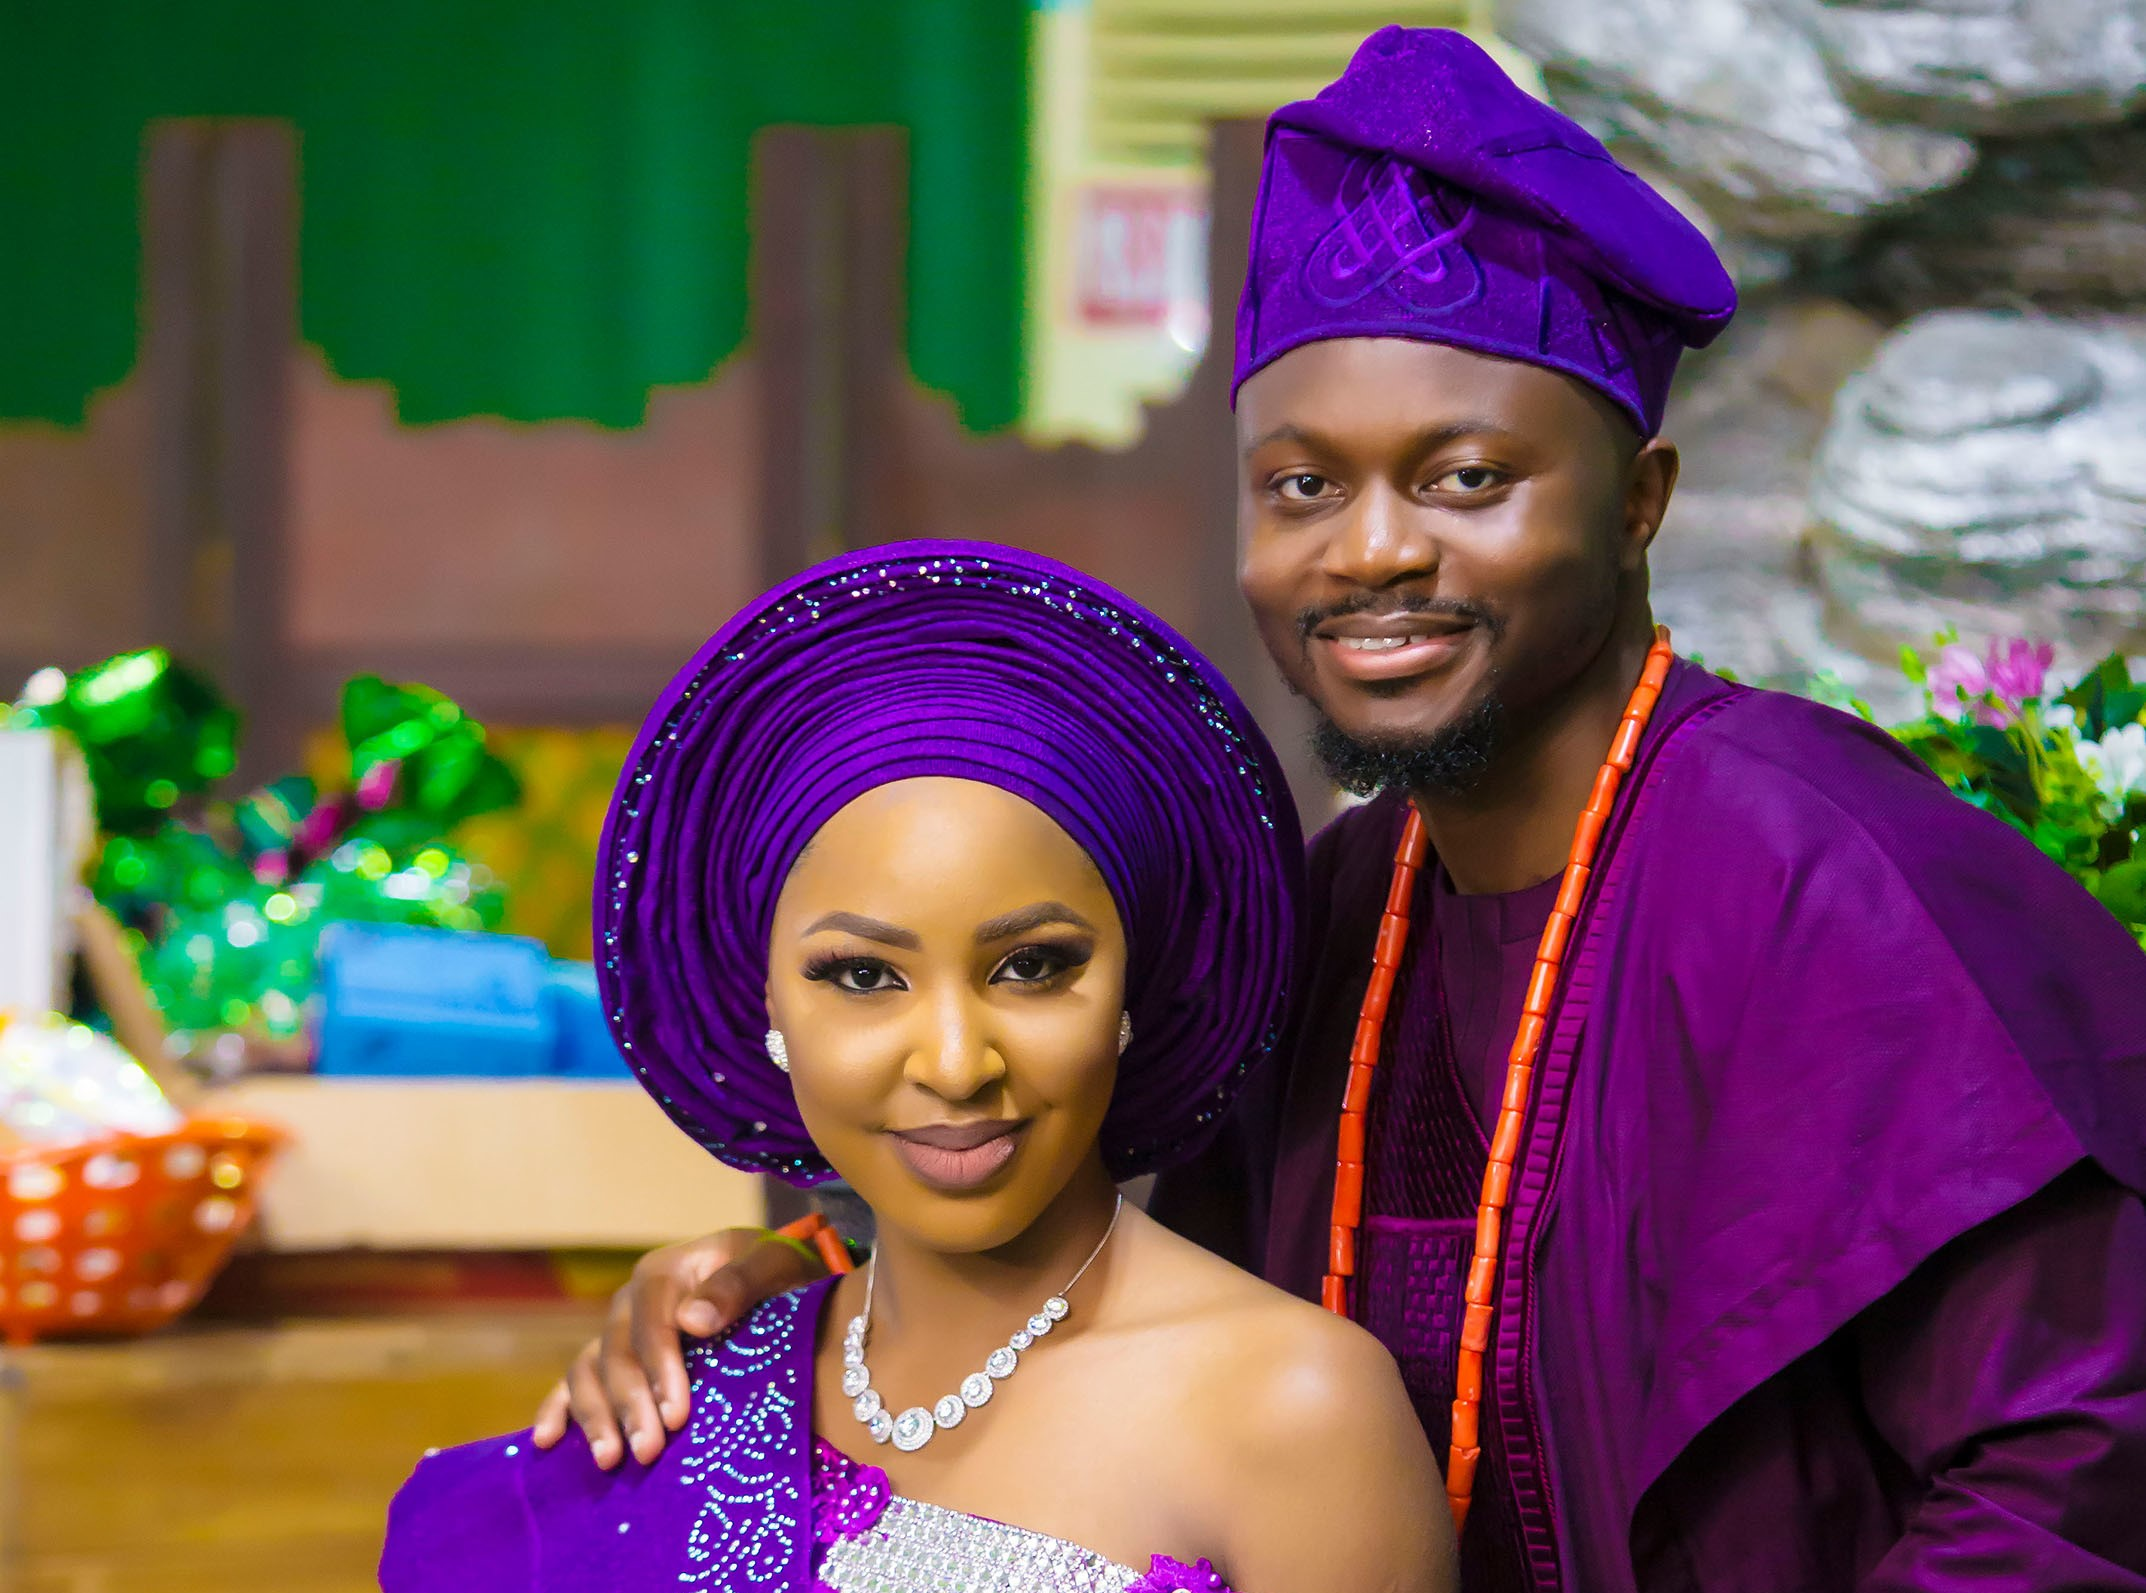 What we loved about Banj & Tosin's #Bosin2018 Nigerian Wedding